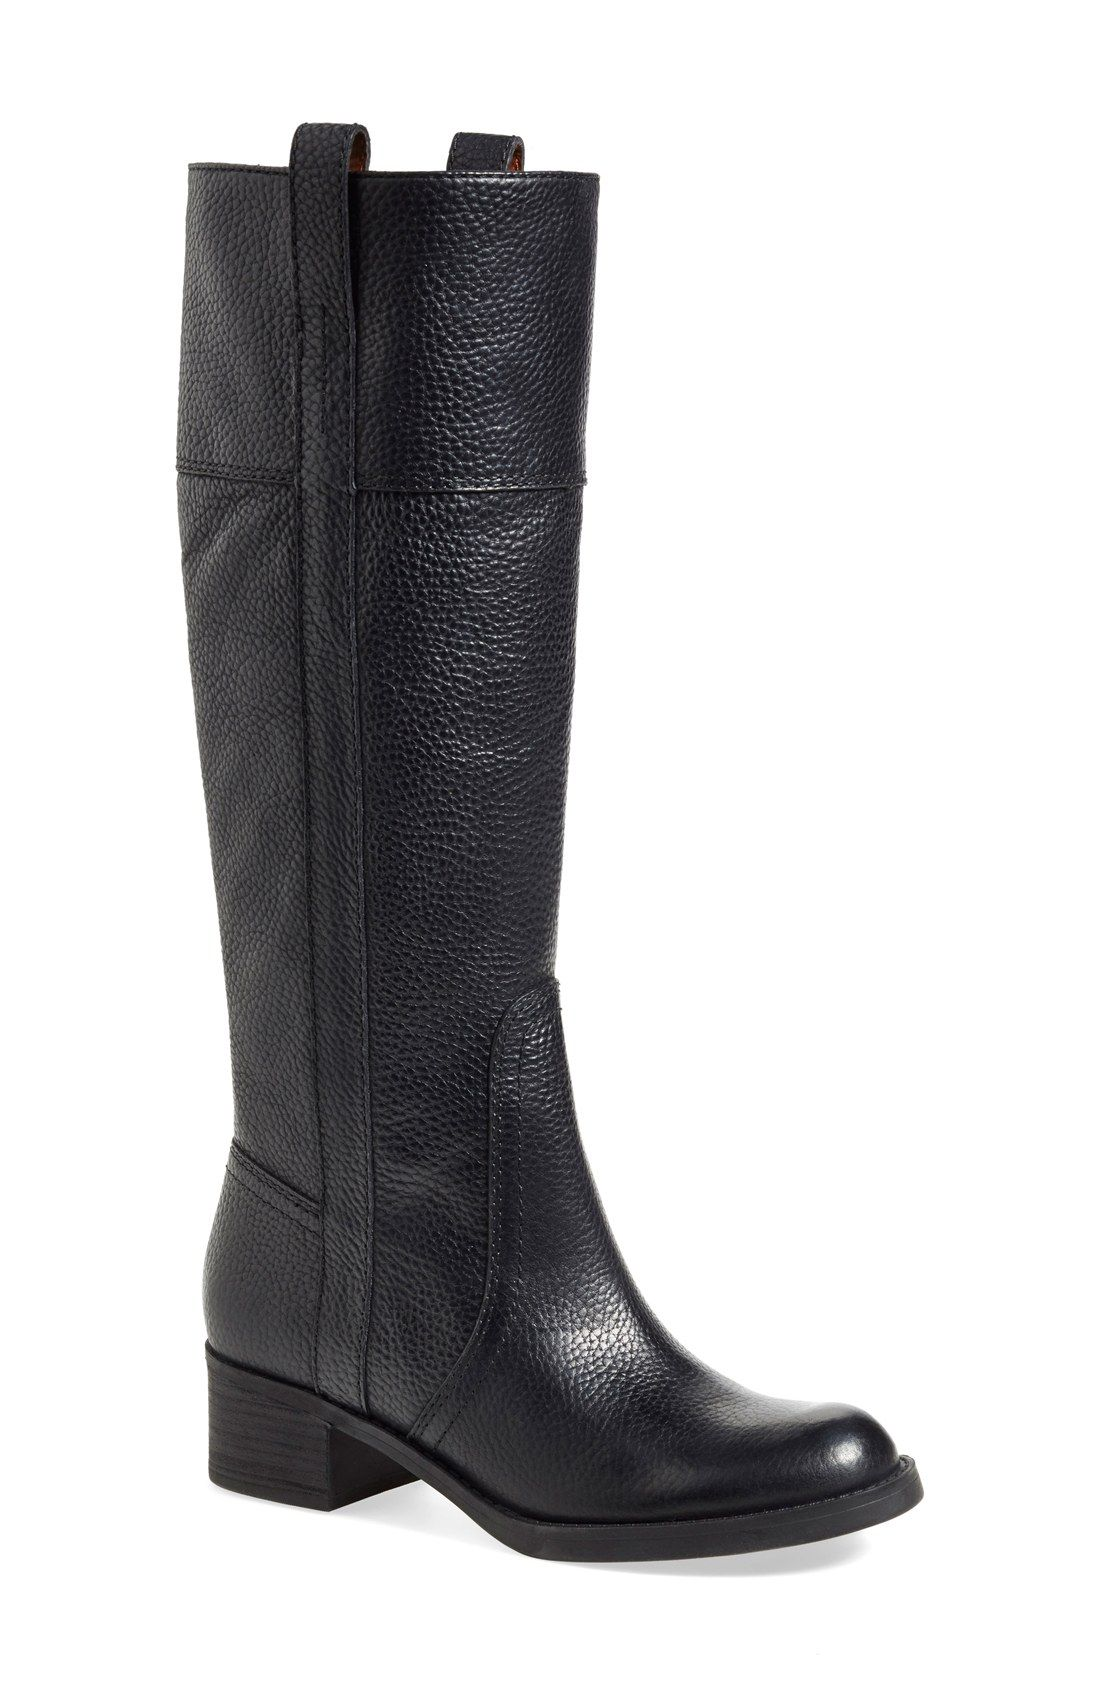 35866d92f5a1 Discover ideas about Material Girls. Liz Claiborne® Sophier Tall Boots ...